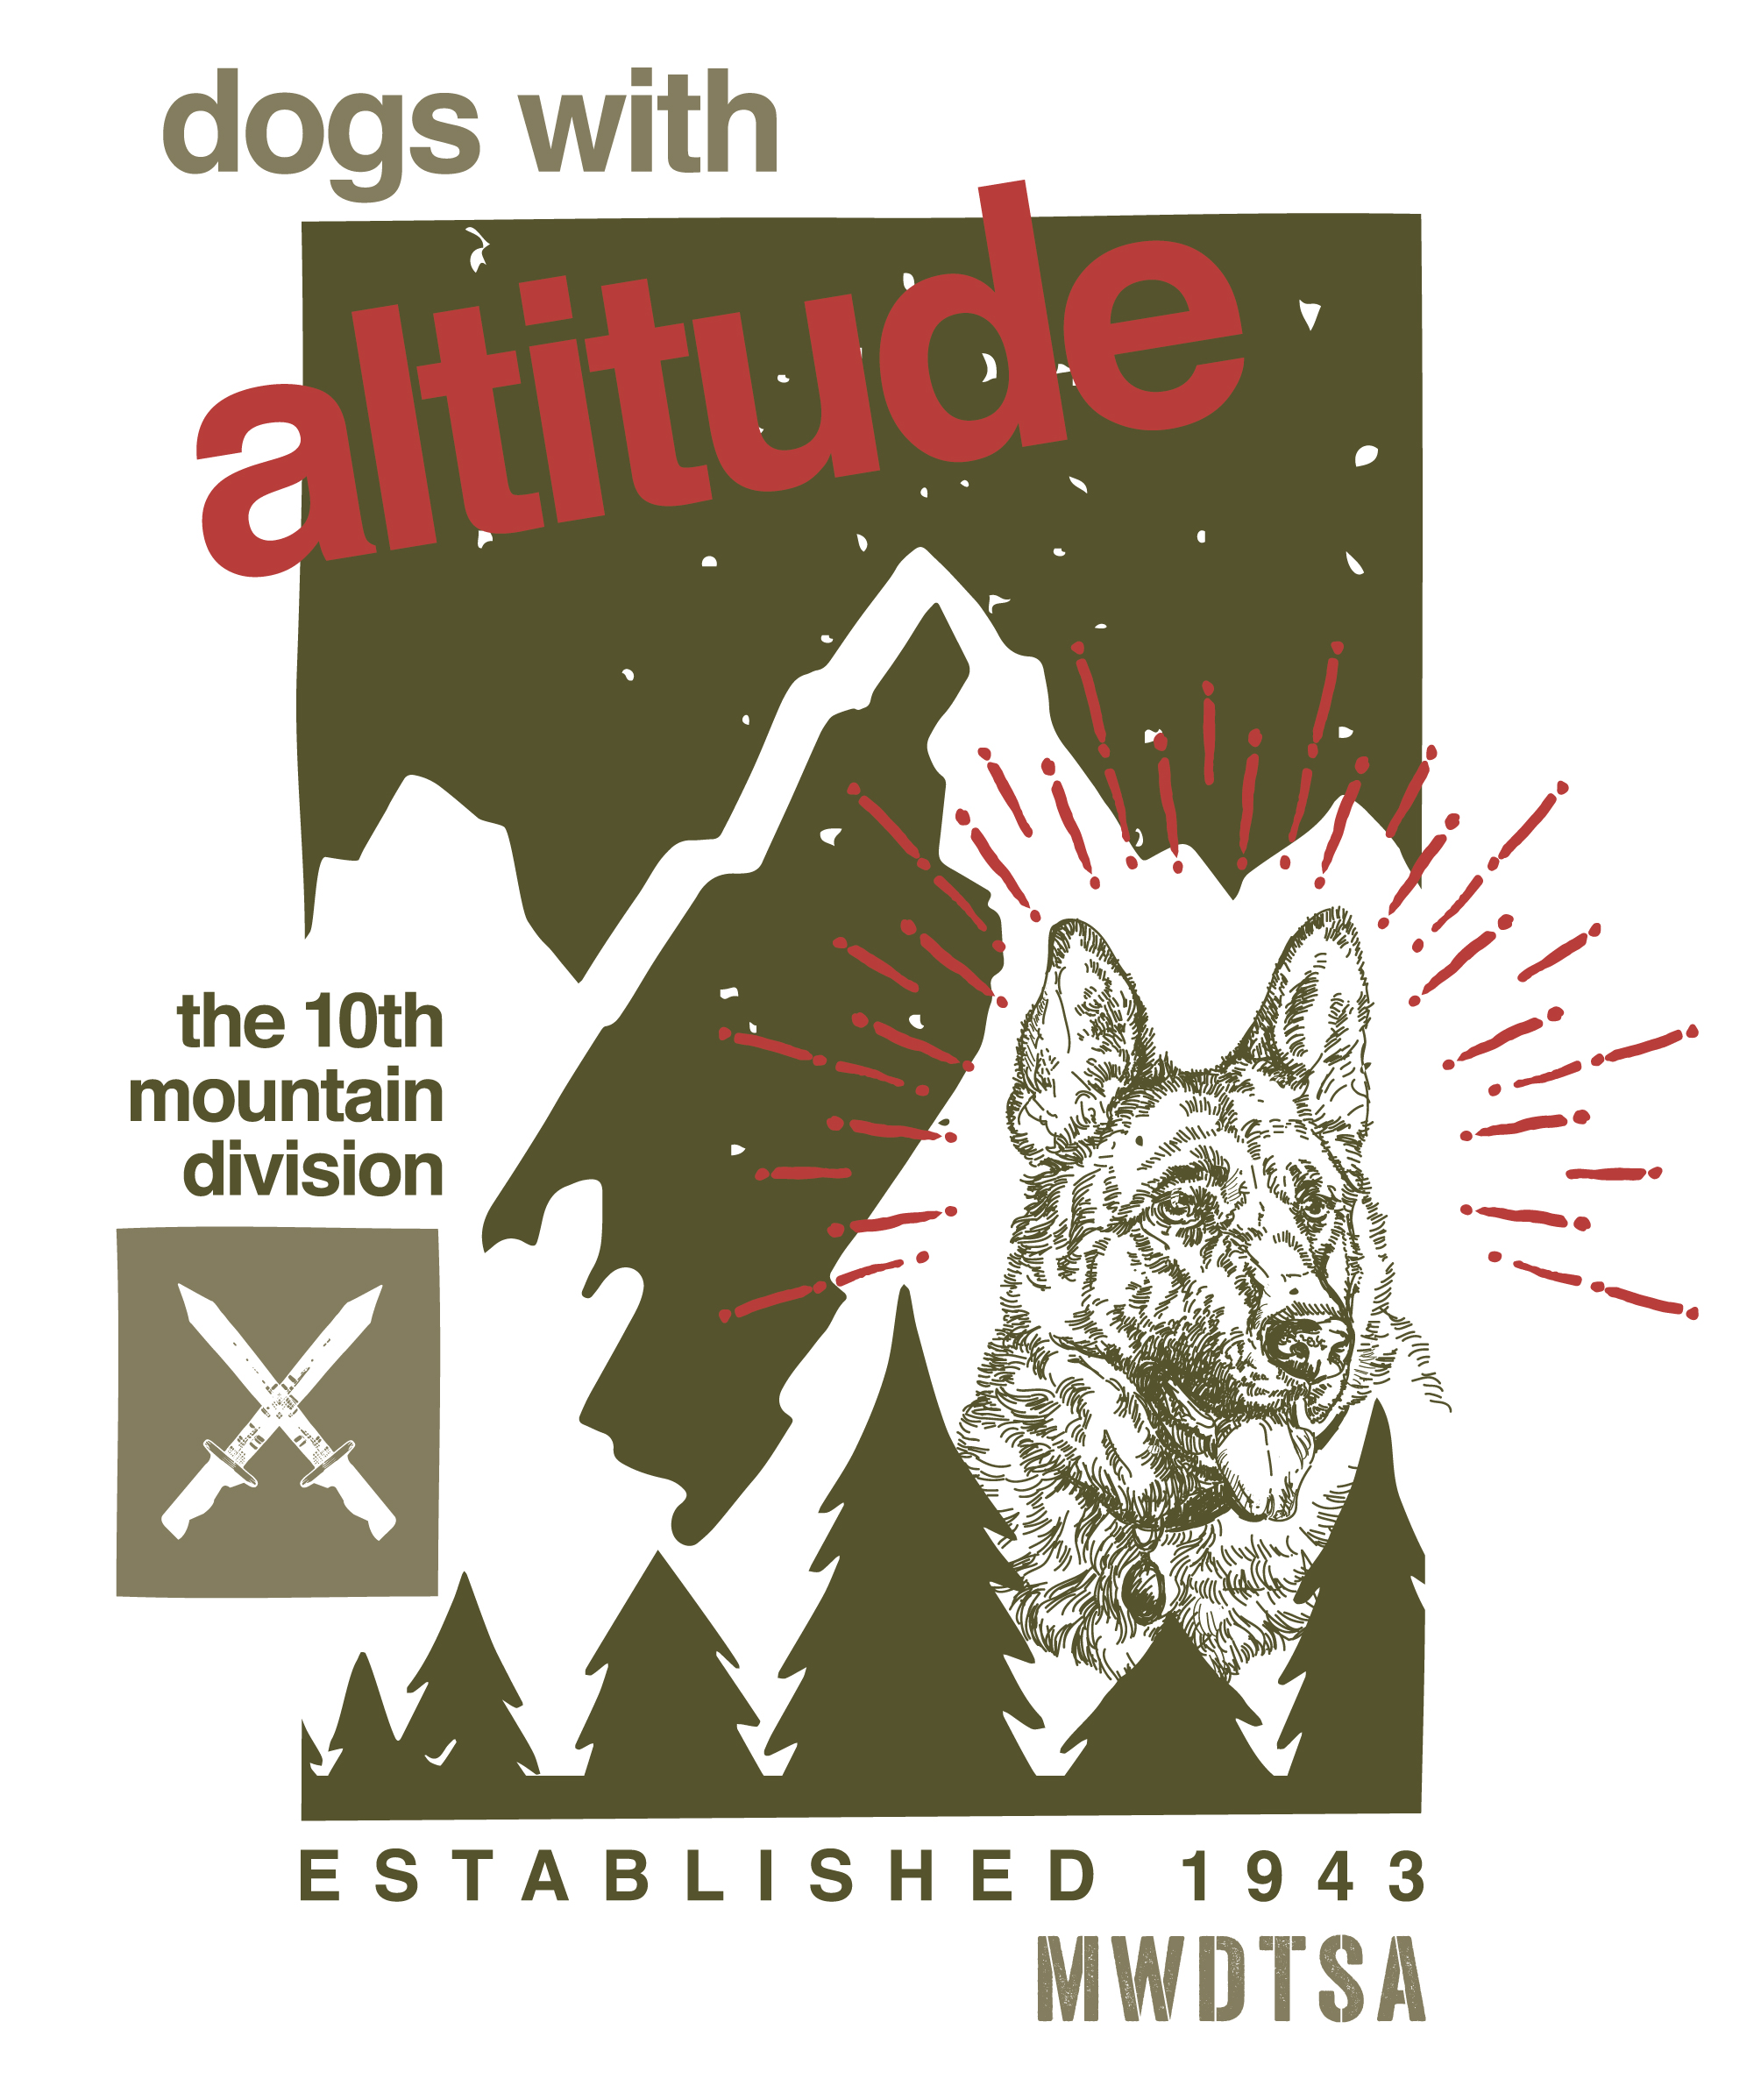 Graphic design for Q1 care package honors the World War II dogs of the 10th Mountain Division.